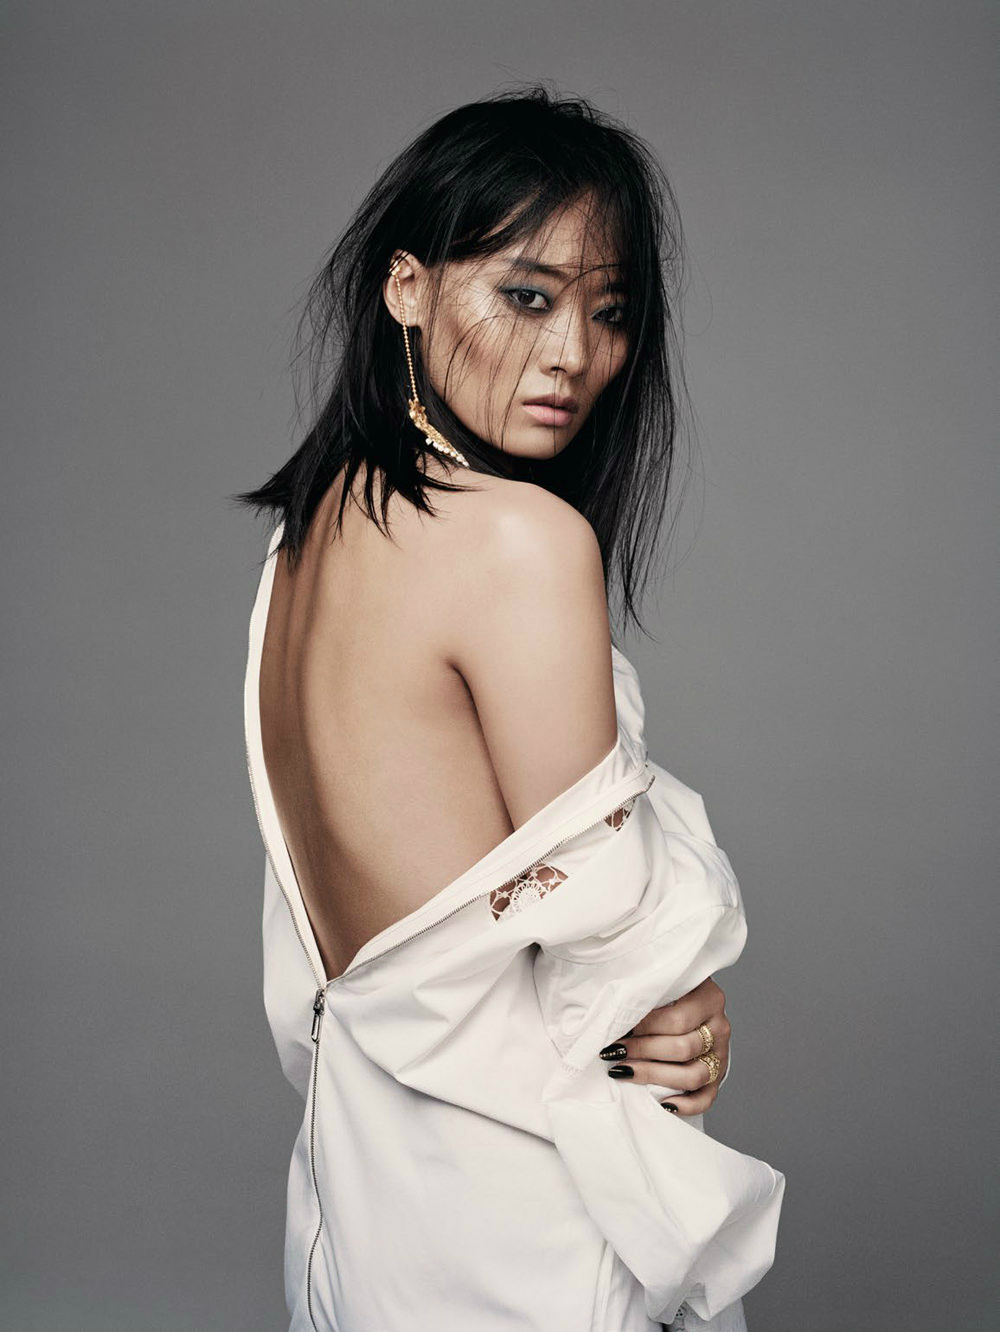 bjarne-jonasson-li-xiao-xing-elle-uk-march-2015-1.jpg